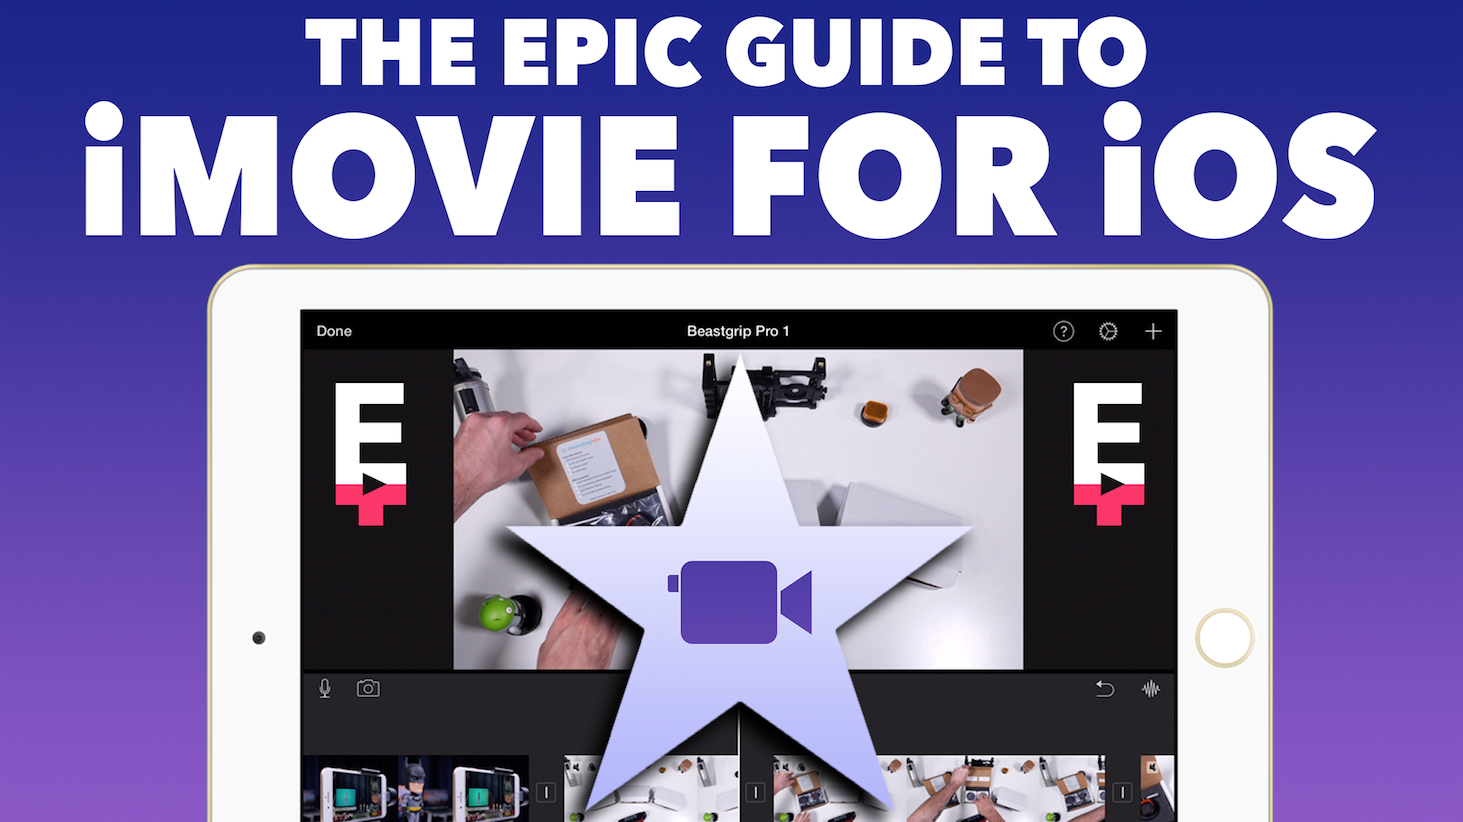 The Epic Guide to iMovie for iOS (iPhone & iPad) | Epic